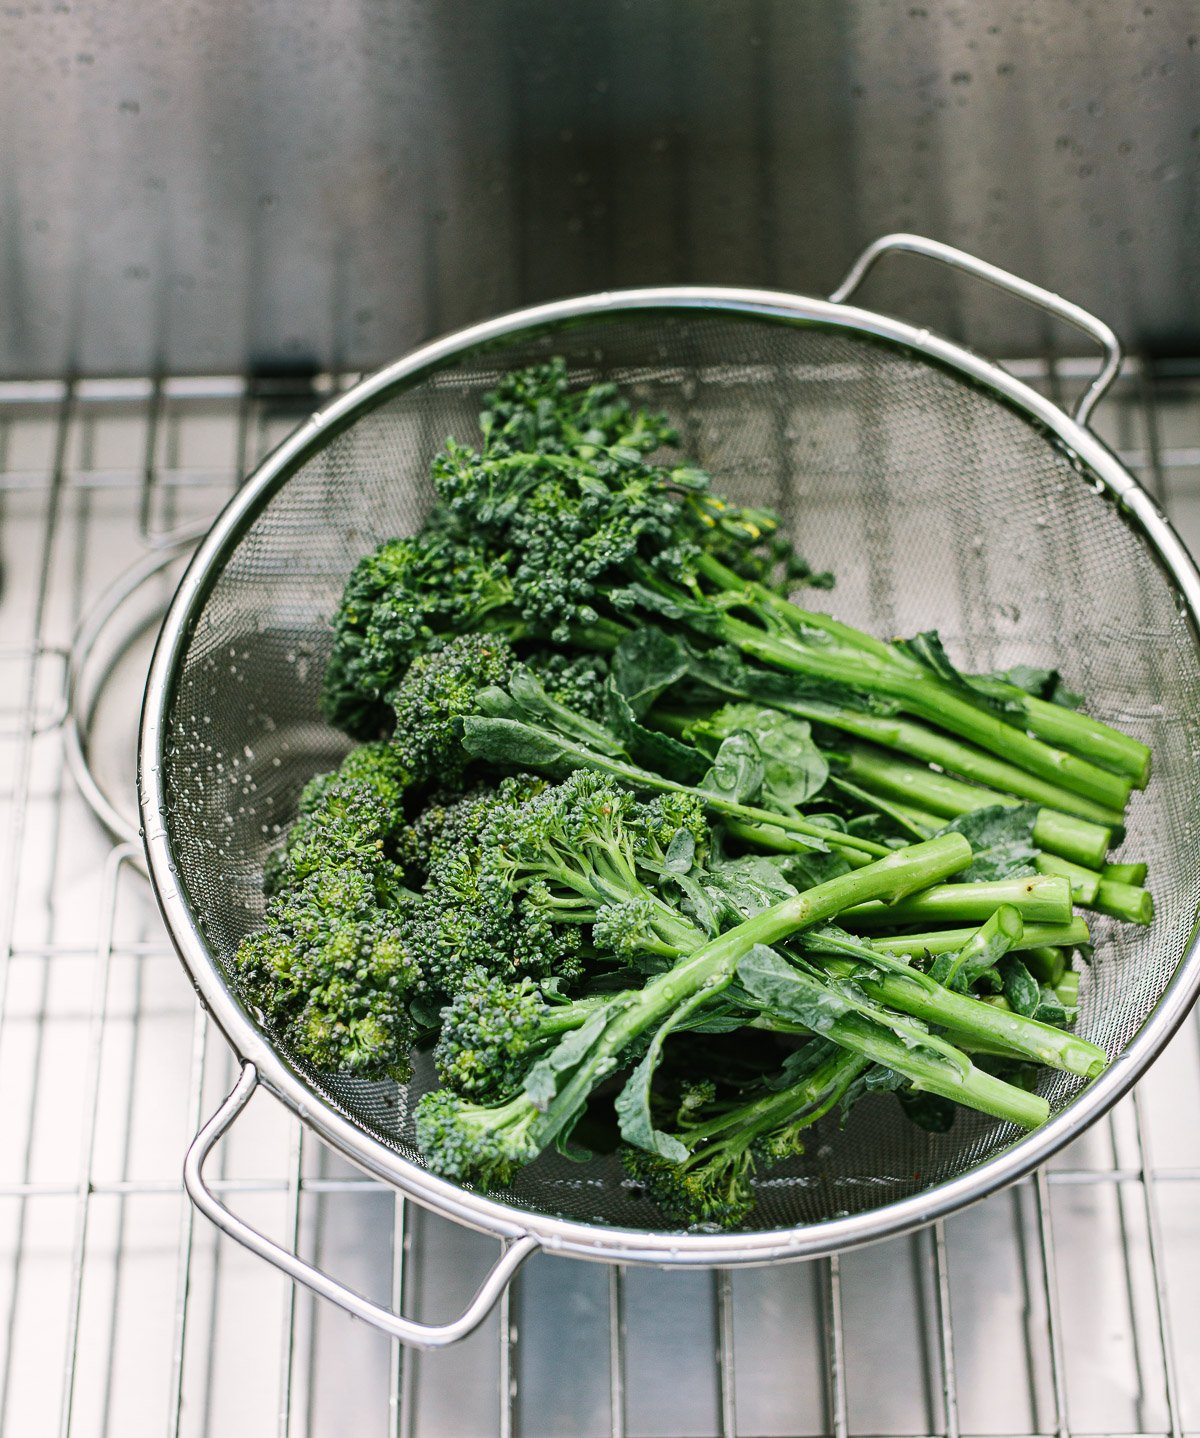 Image of broccolini in a wire mesh colander in a stainless steel sink.